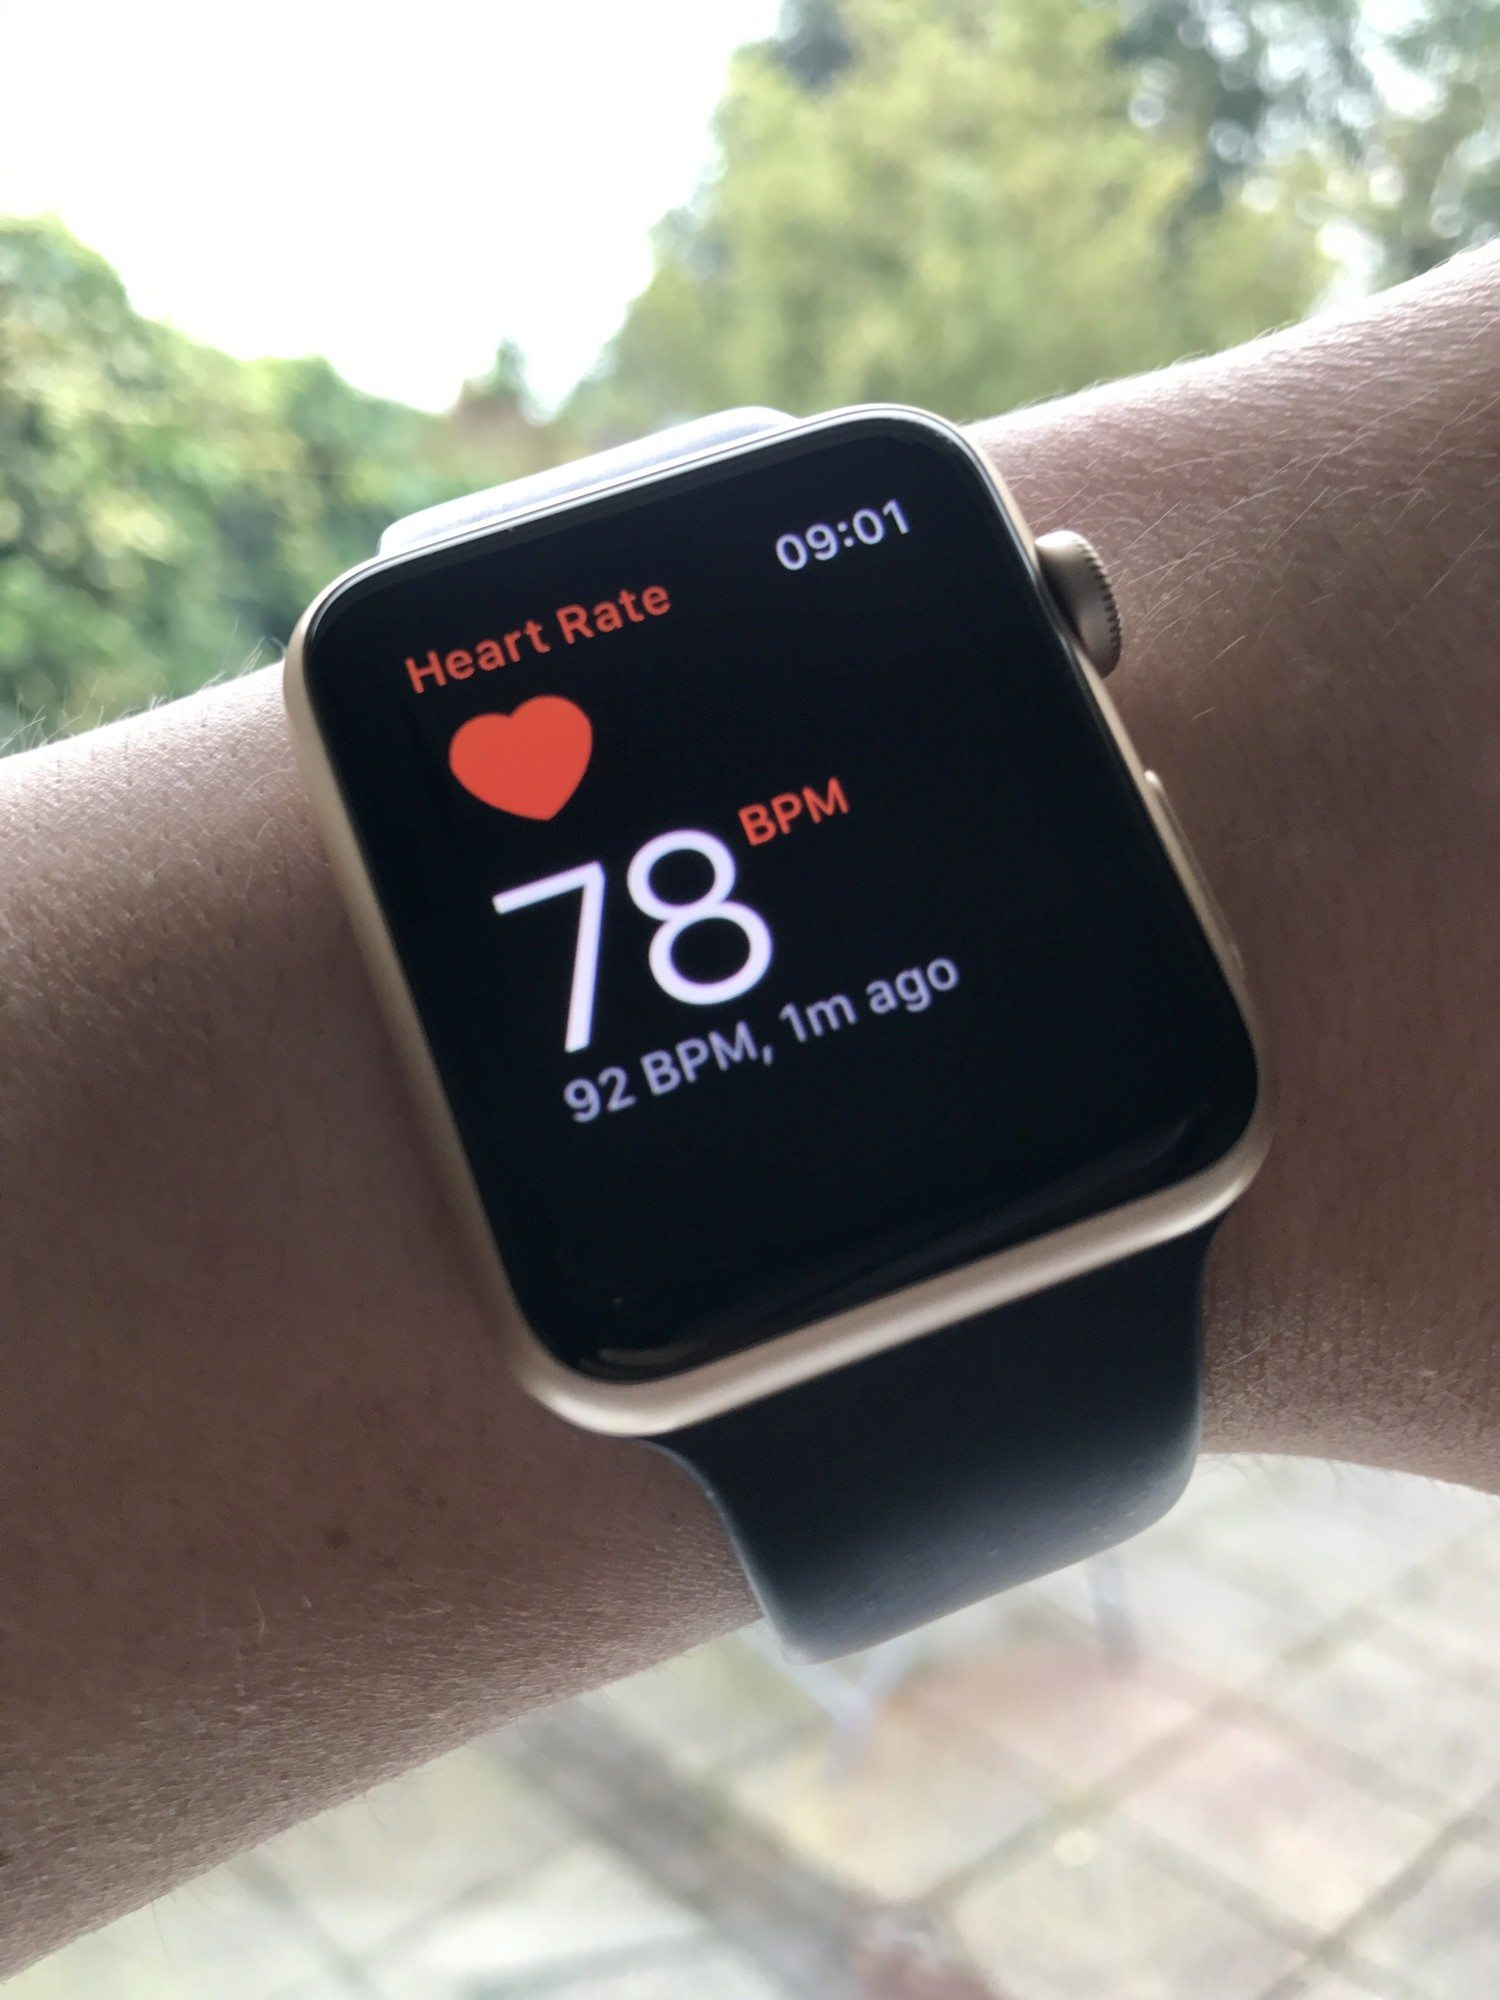 Apple watch heart rate photo